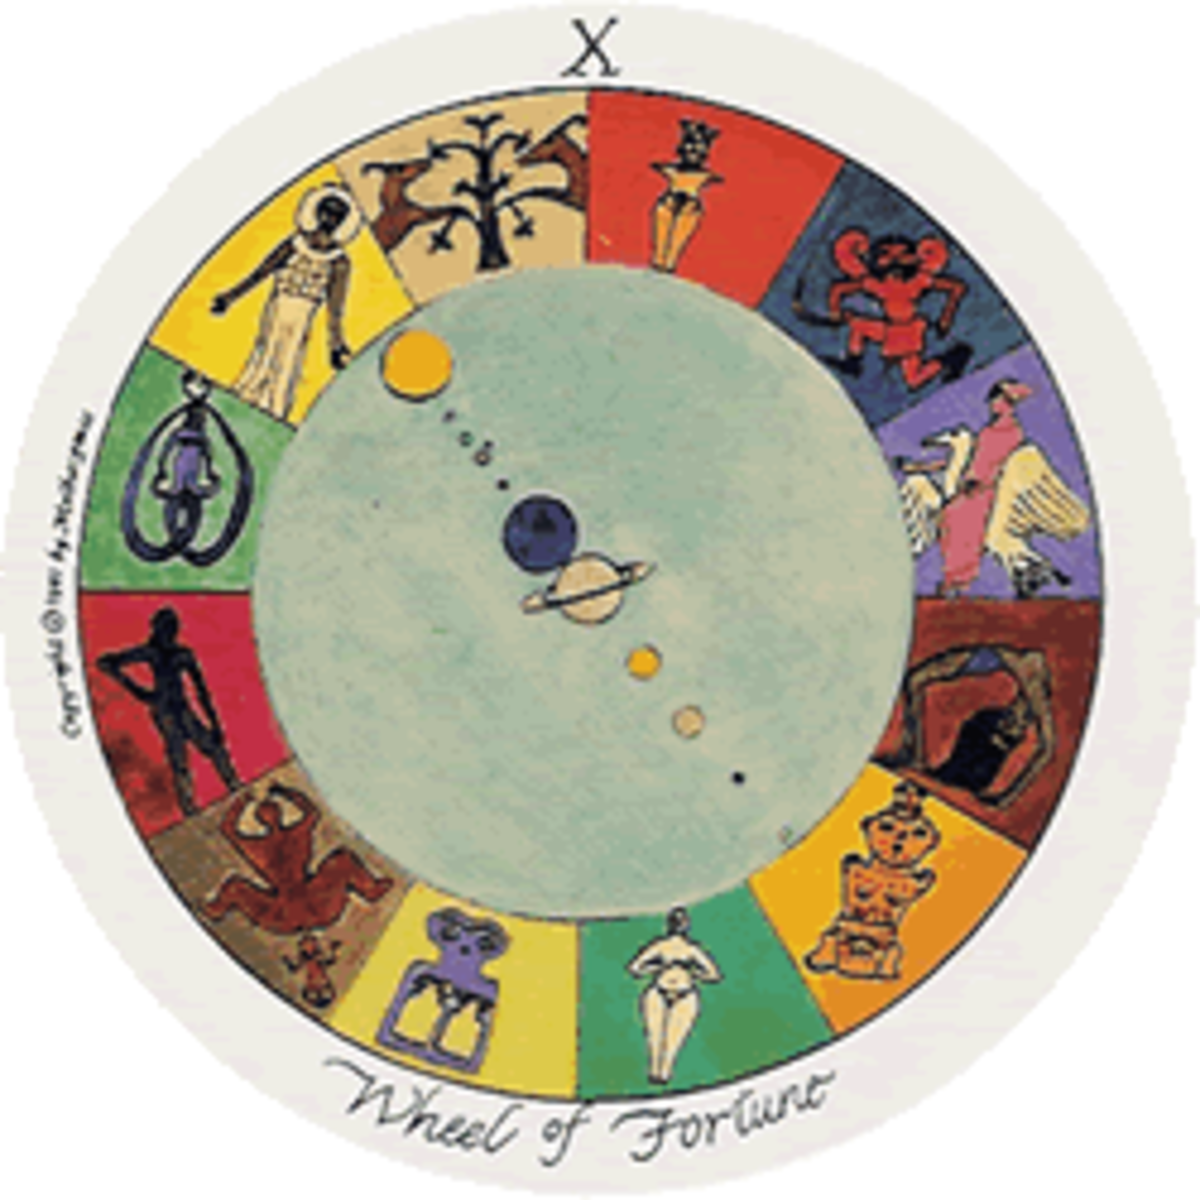 The red square with the black figure, on the left, below the fold, is Aries, in this case, you read the way to go as behavior befitting an Aries person.